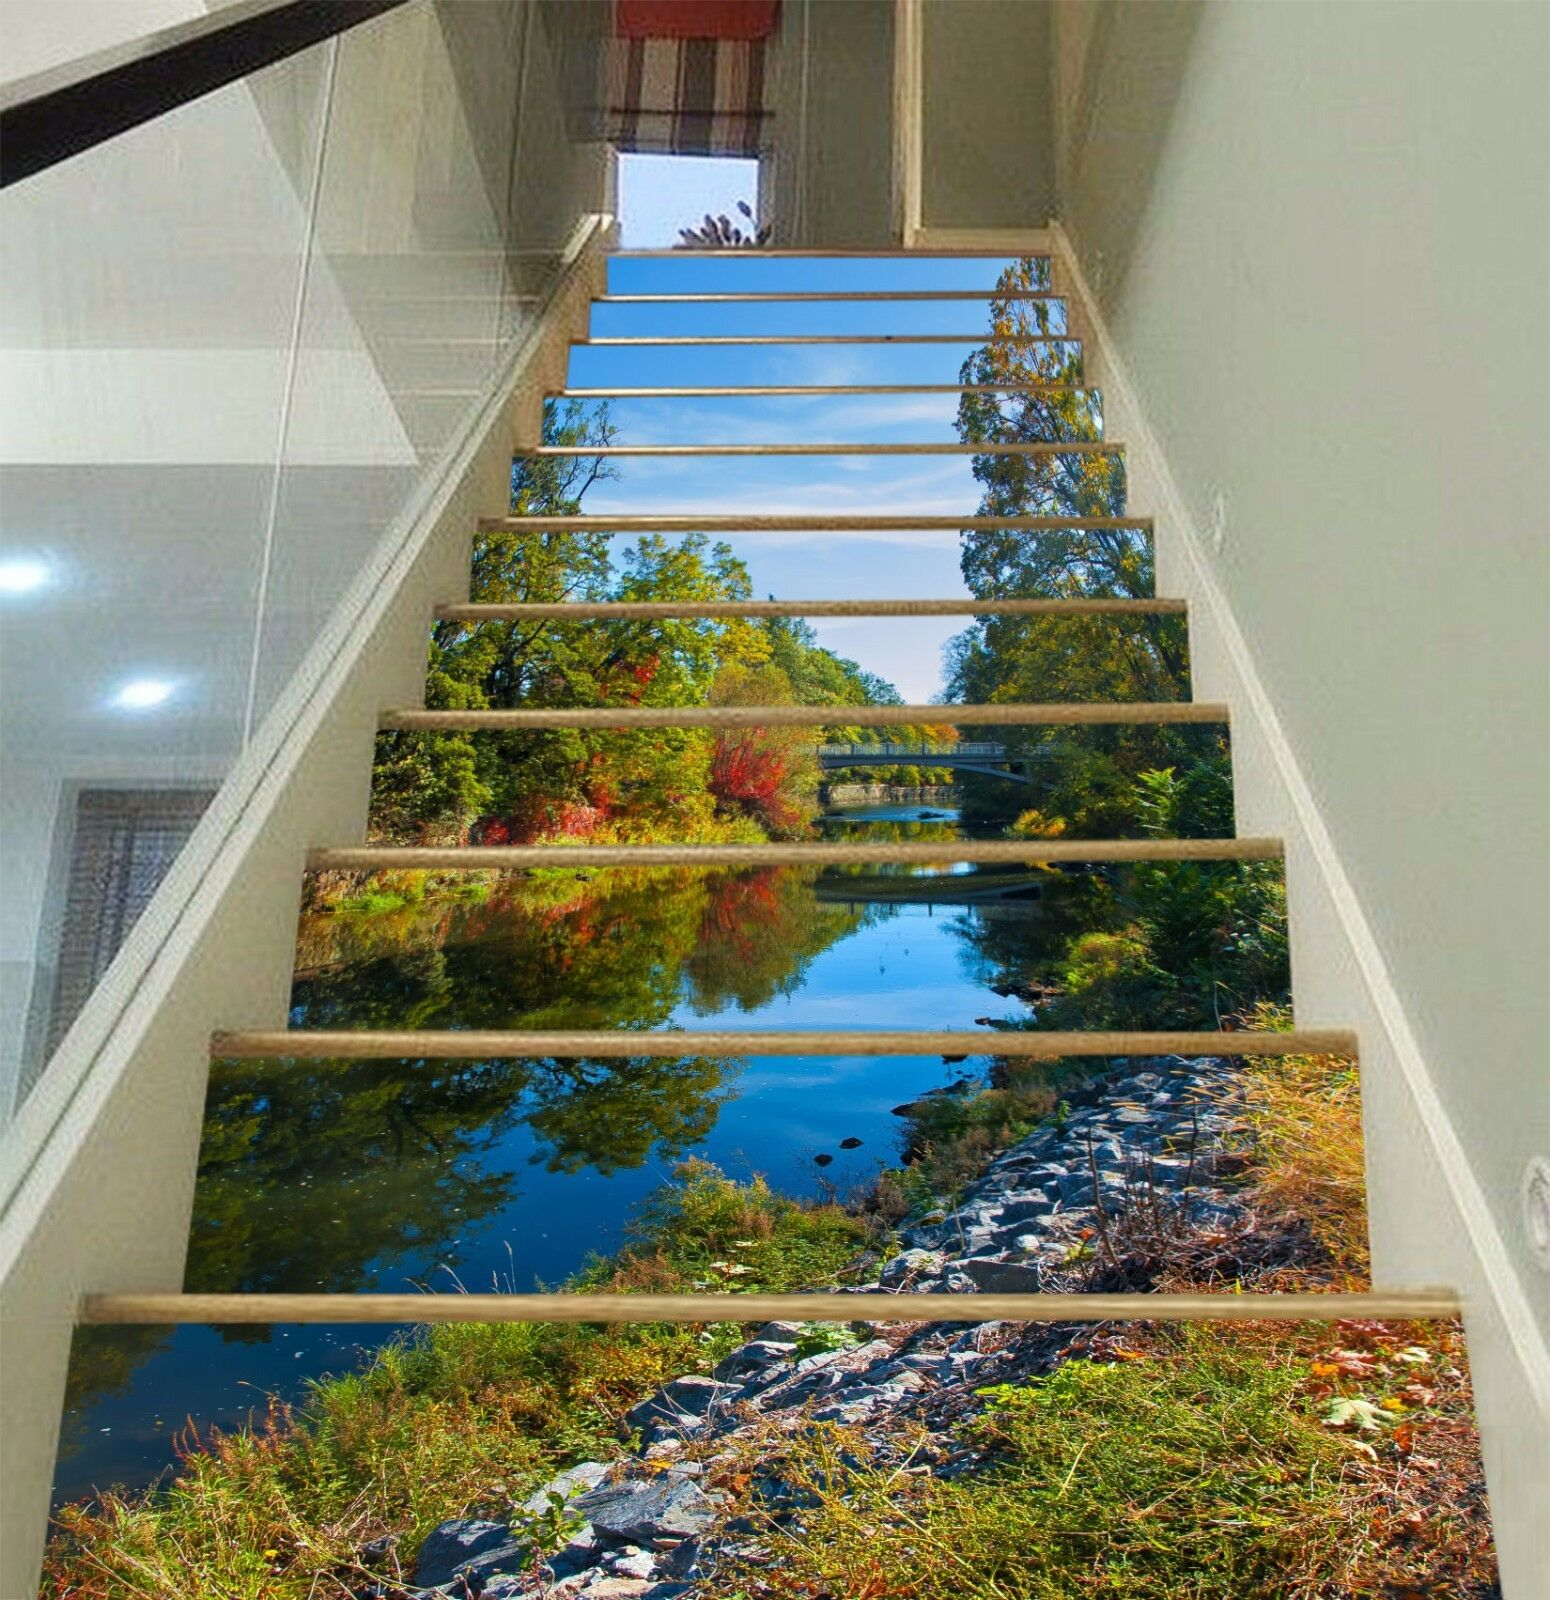 3D River Scenery 90 Stair Risers Decoration Photo Mural Vinyl Decal WandPapier AU